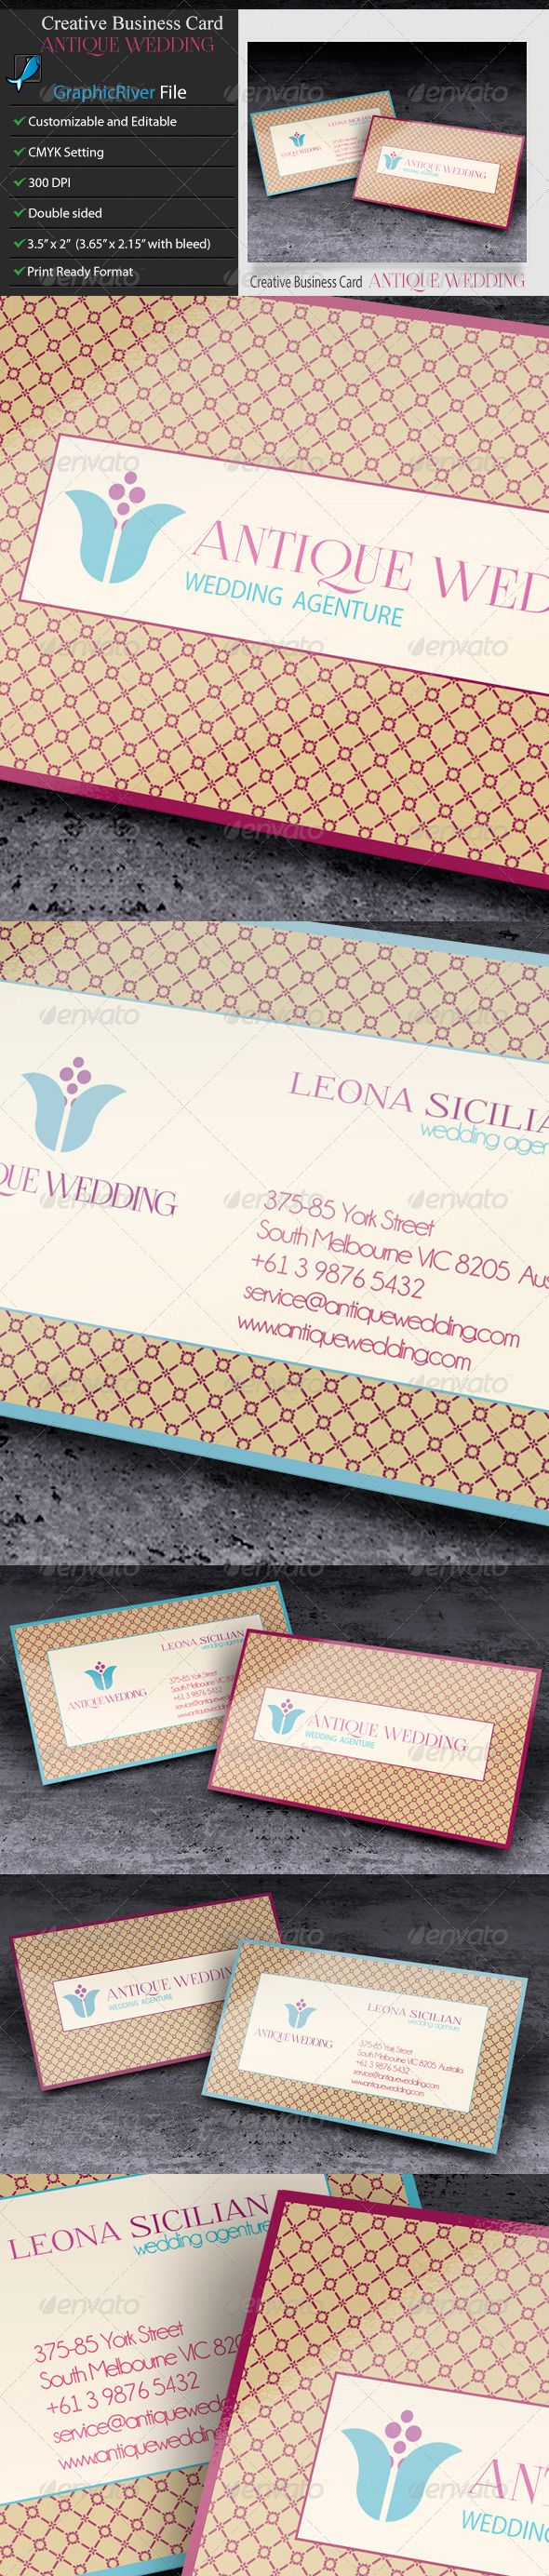 Creative Business Card - AntiqueWedding